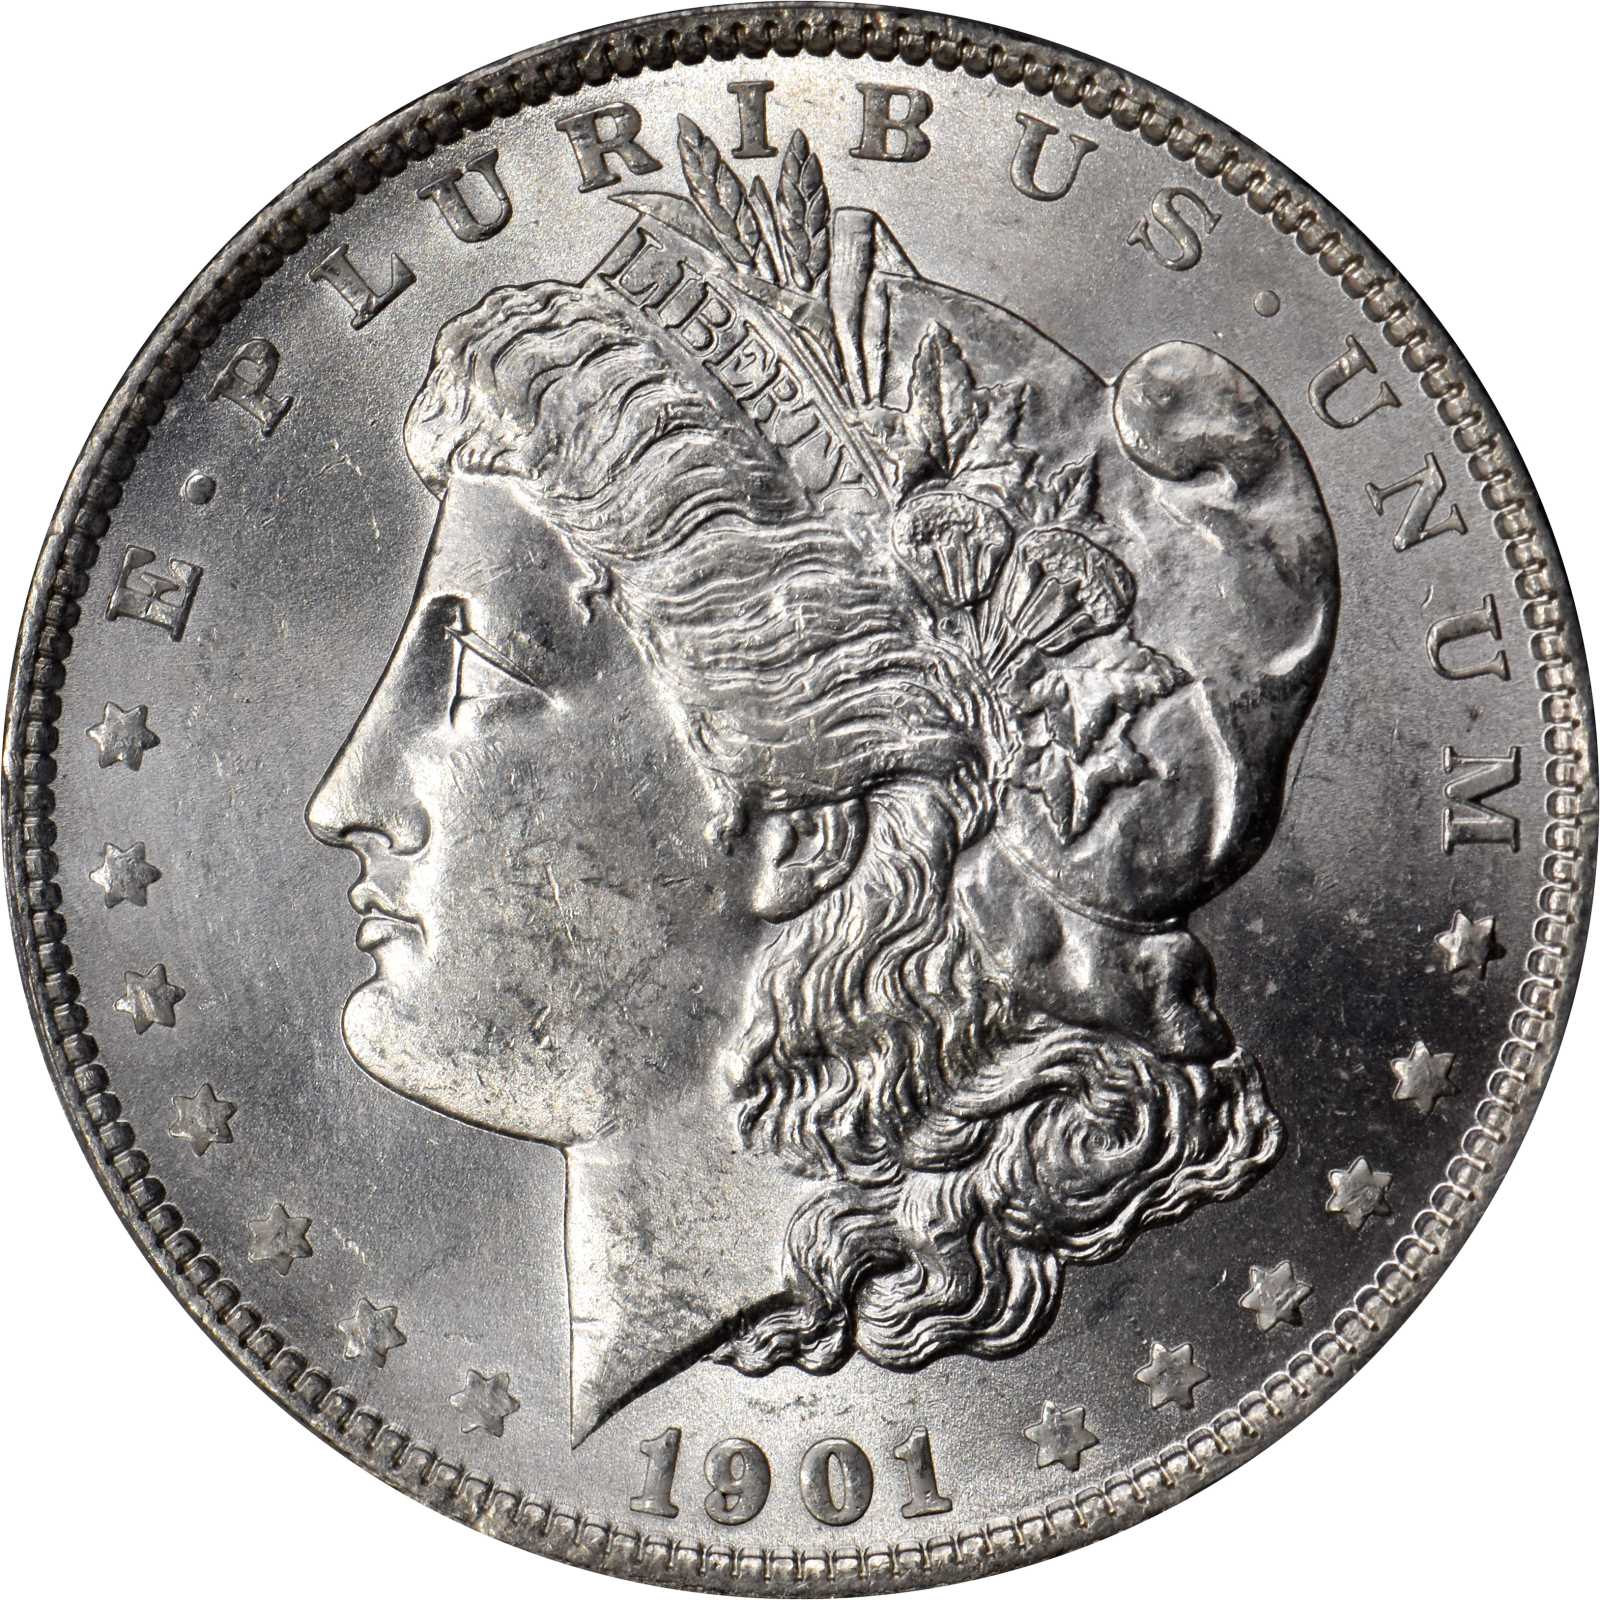 1831 Capped Bust Half Dollar 1831 Capped Bust Half Dollar